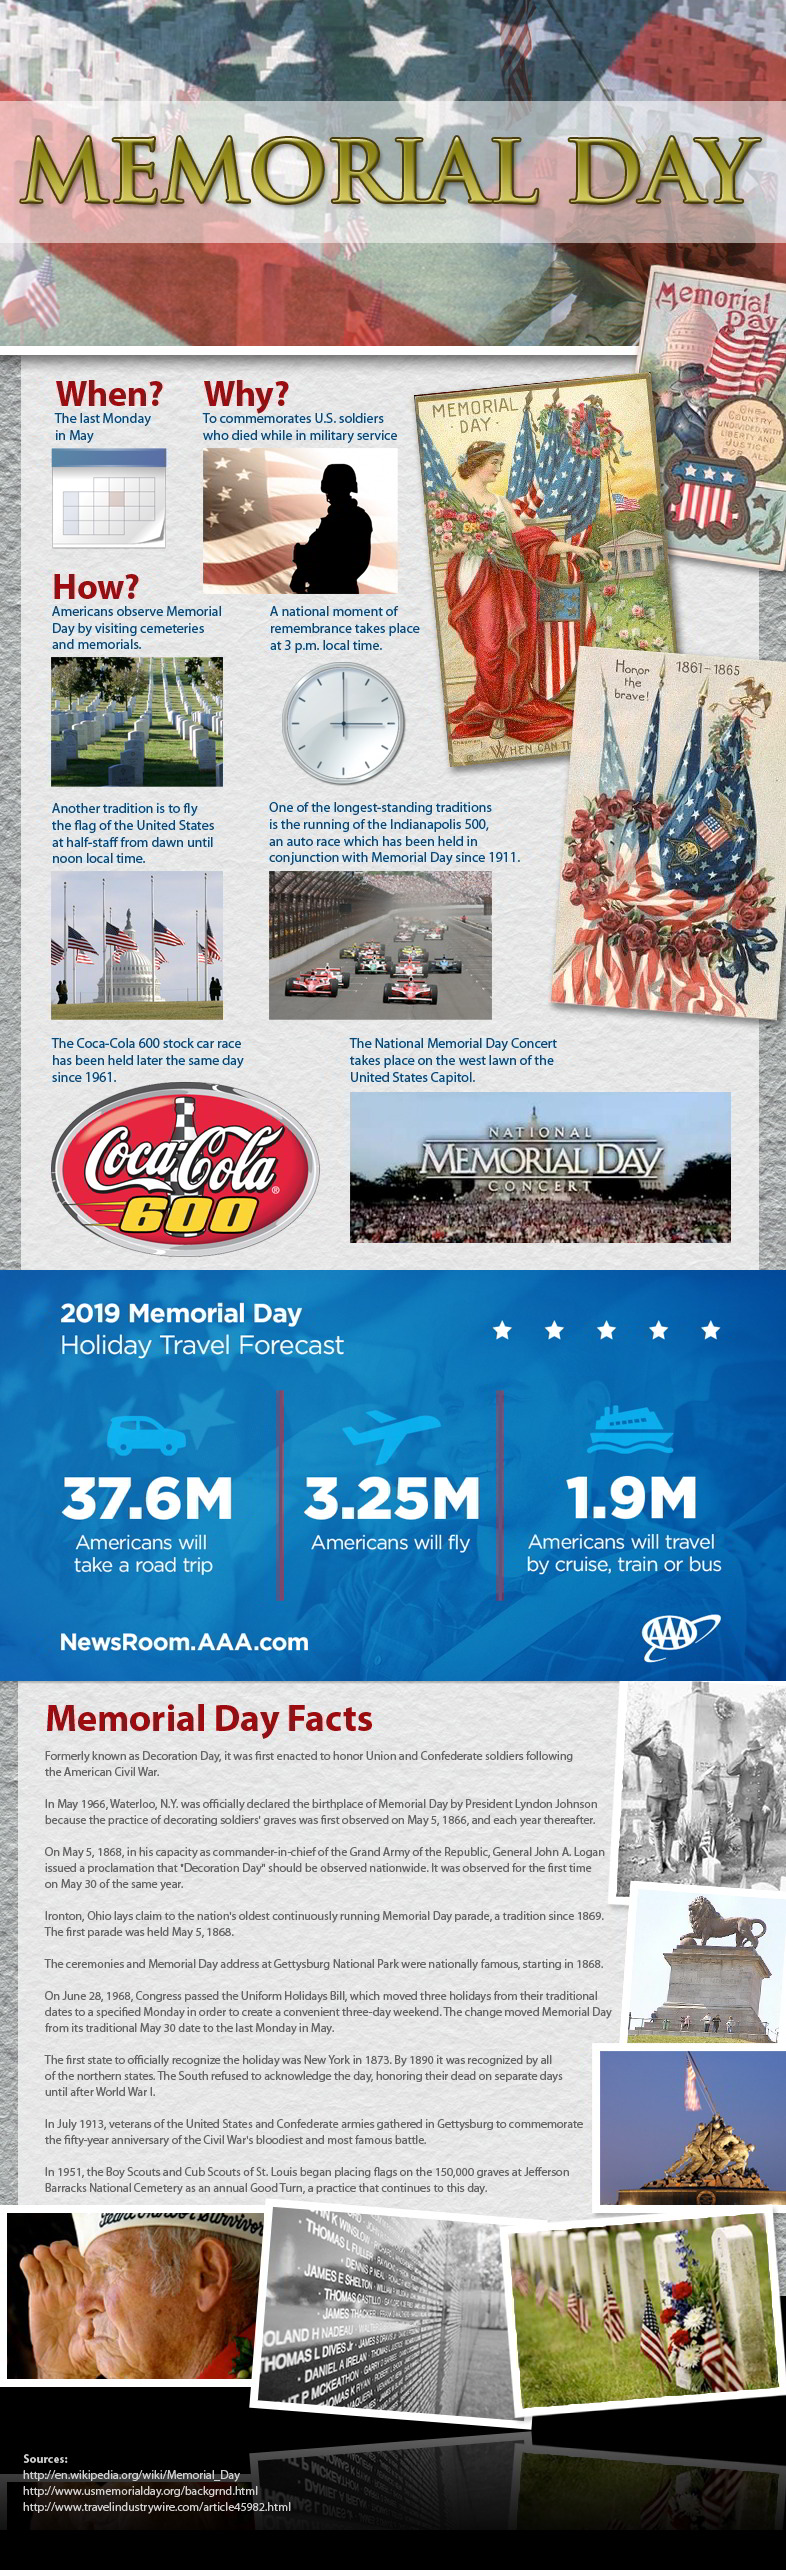 Memorial Day Facts 2019 - Real Estate Investing Today